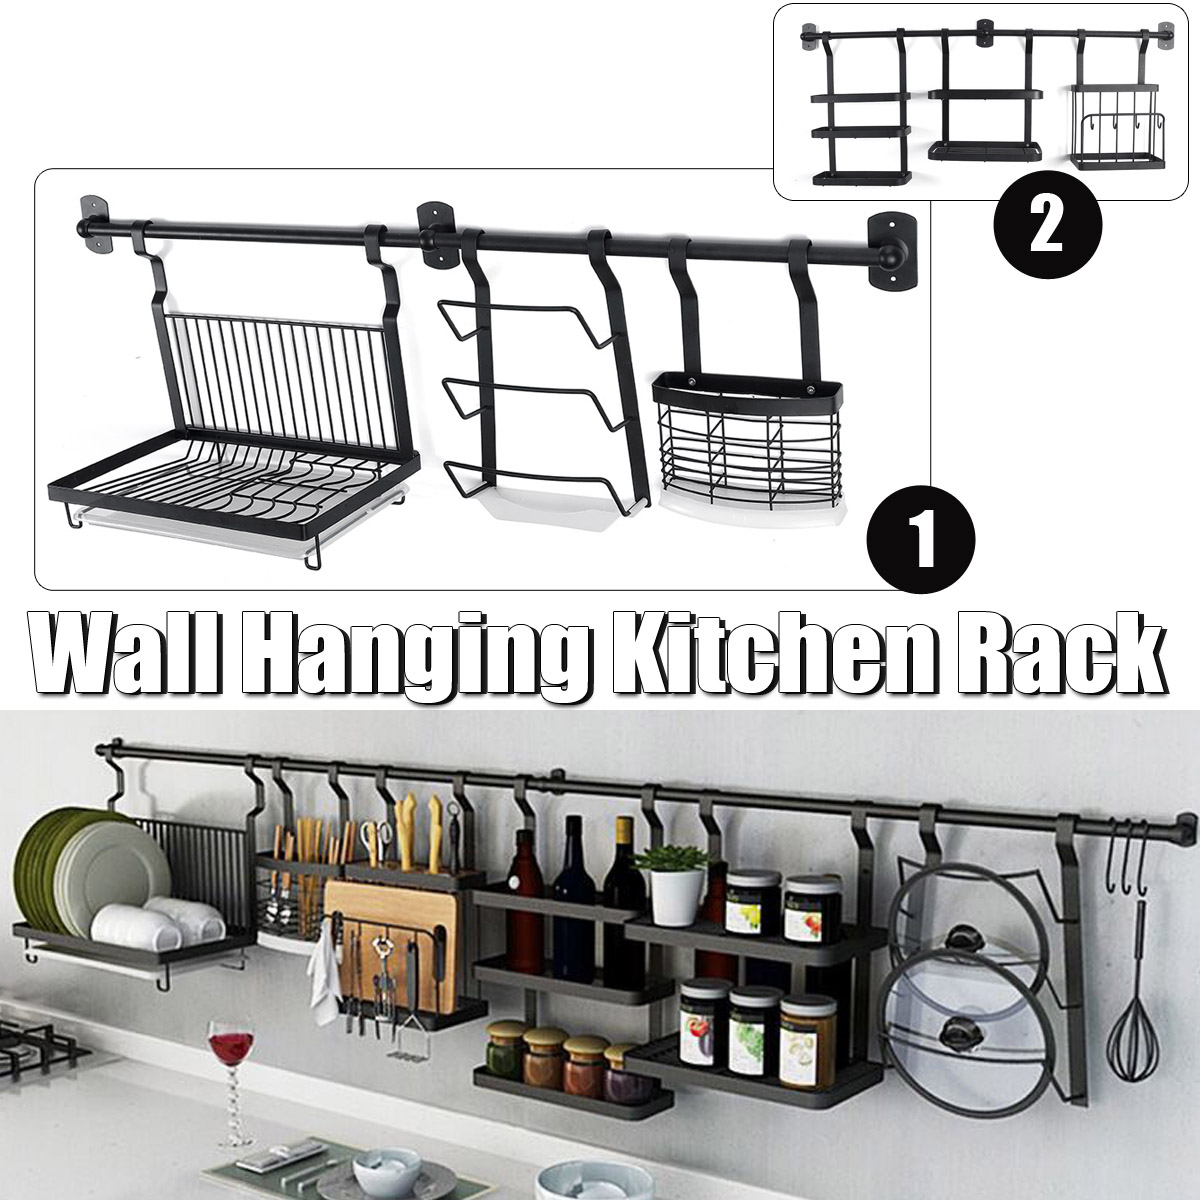 Kitchen Utensil Rack Stainless Steel Hanging Rack Rail Organize Kitchen Rack 2 Type For Choice Baking Paint Wall Mounted Storage Organizer Walmart Com Walmart Com